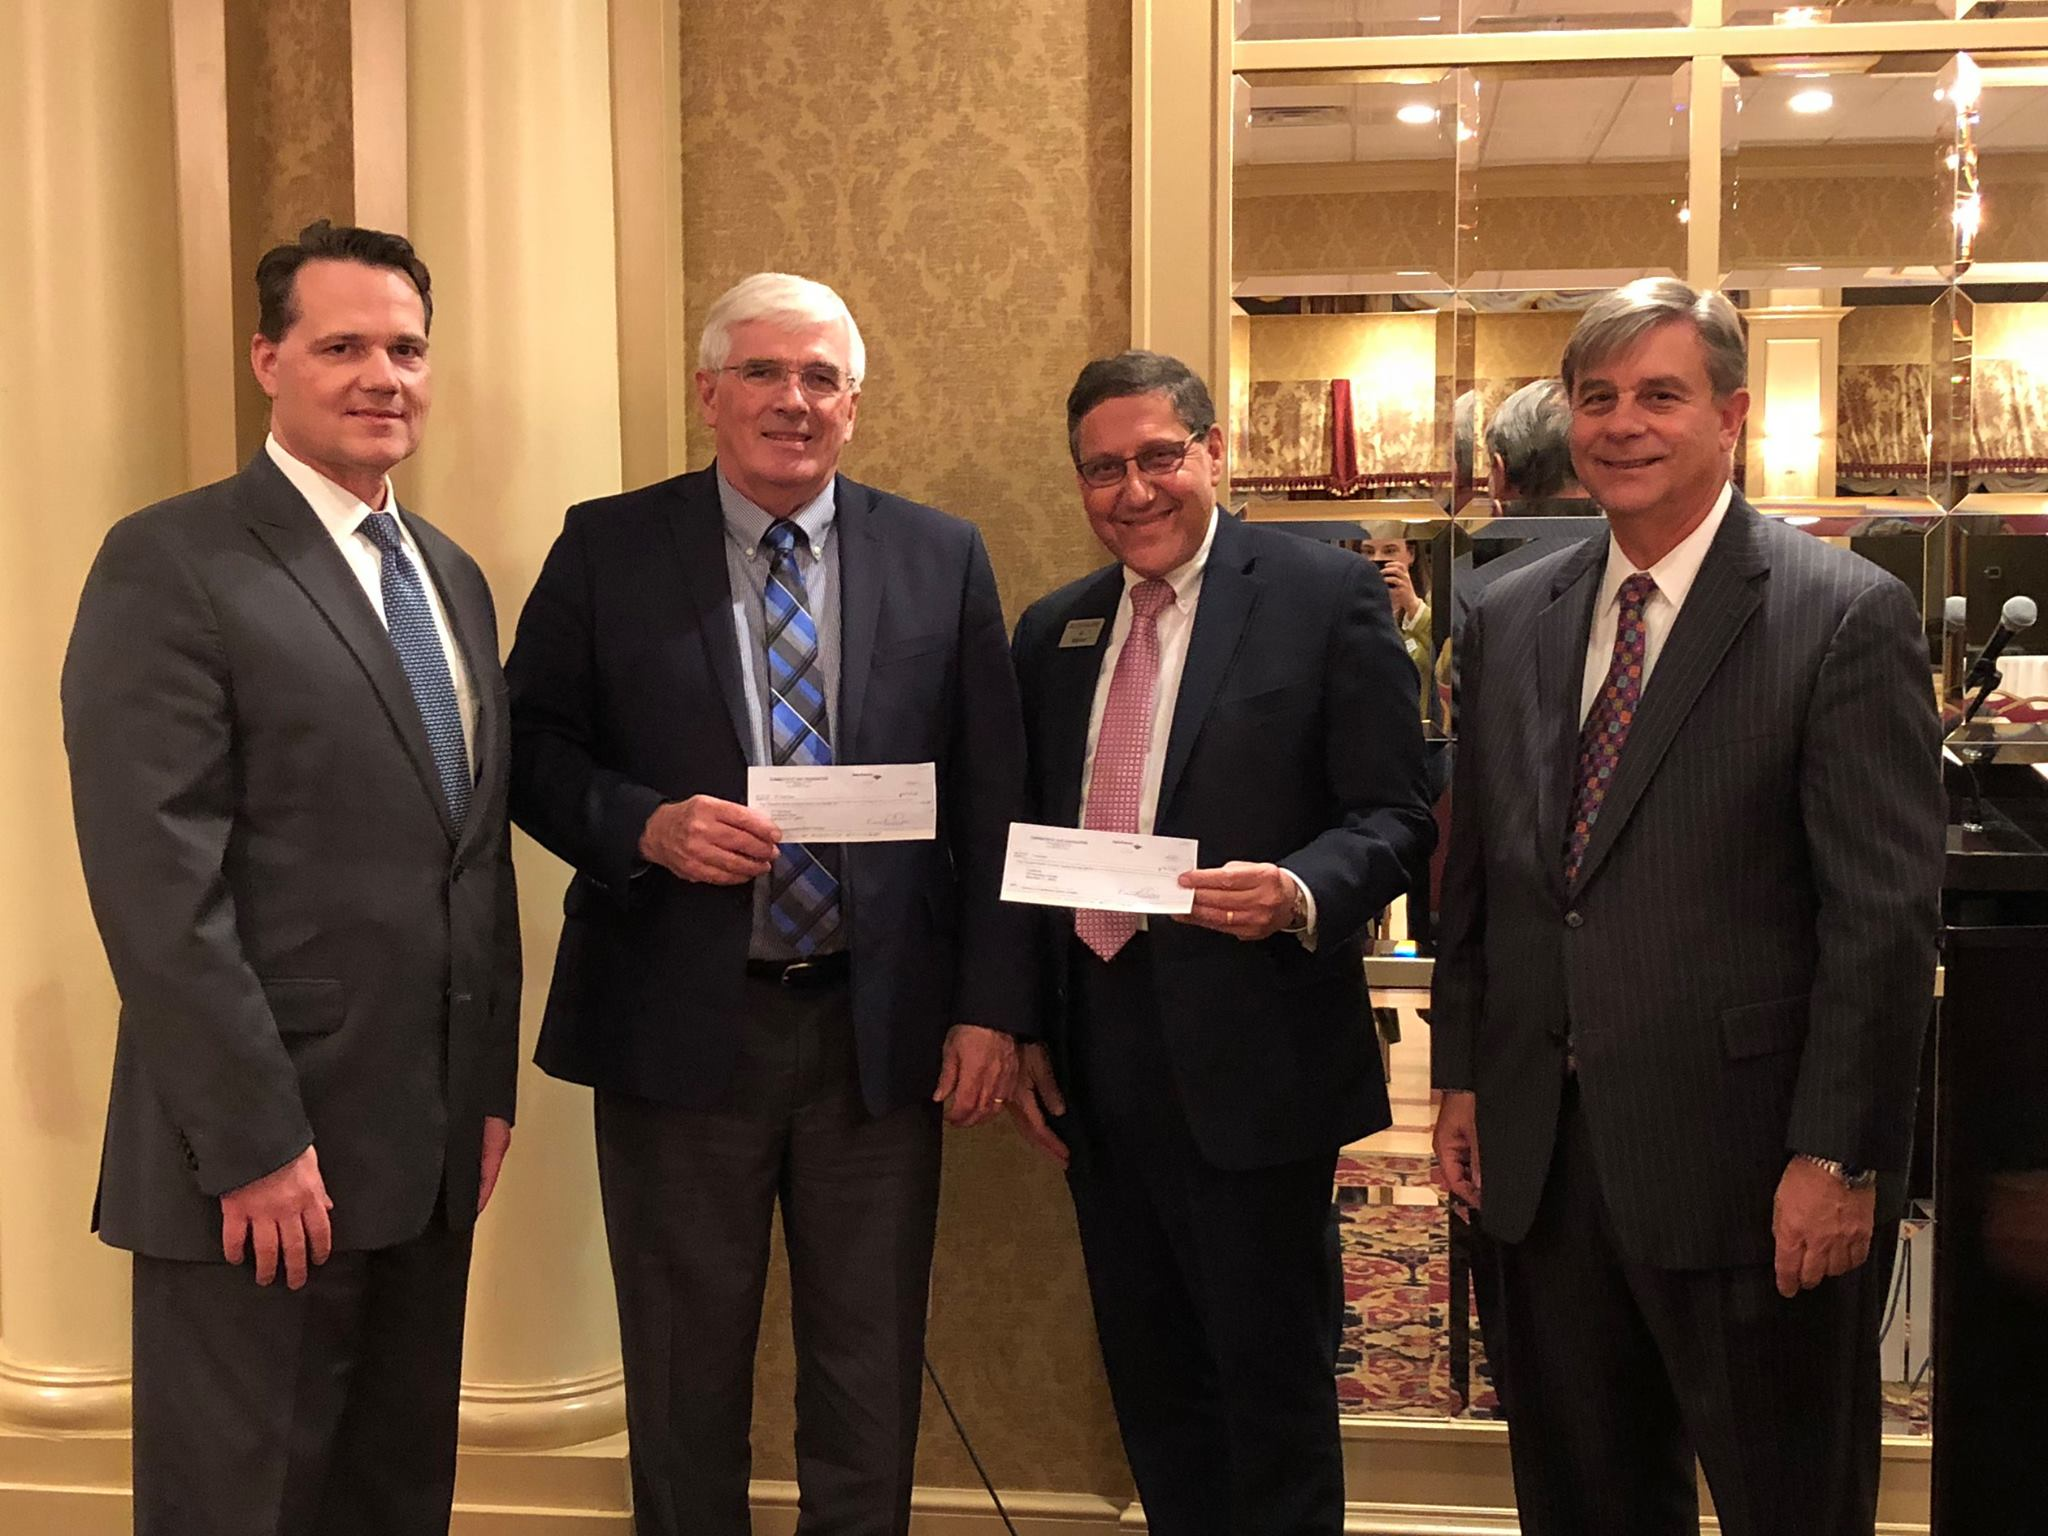 (L to R) Workers' Compensation Section Chair Francis X. Drapeau, Connecticut Food Bank Chief Executive Officer Bernard J. Beaudreau, Foodshare Corporate and Community Giving Manager Al Marino, and Charity Golf Committee Chair Richard L. Aiken, Jr.